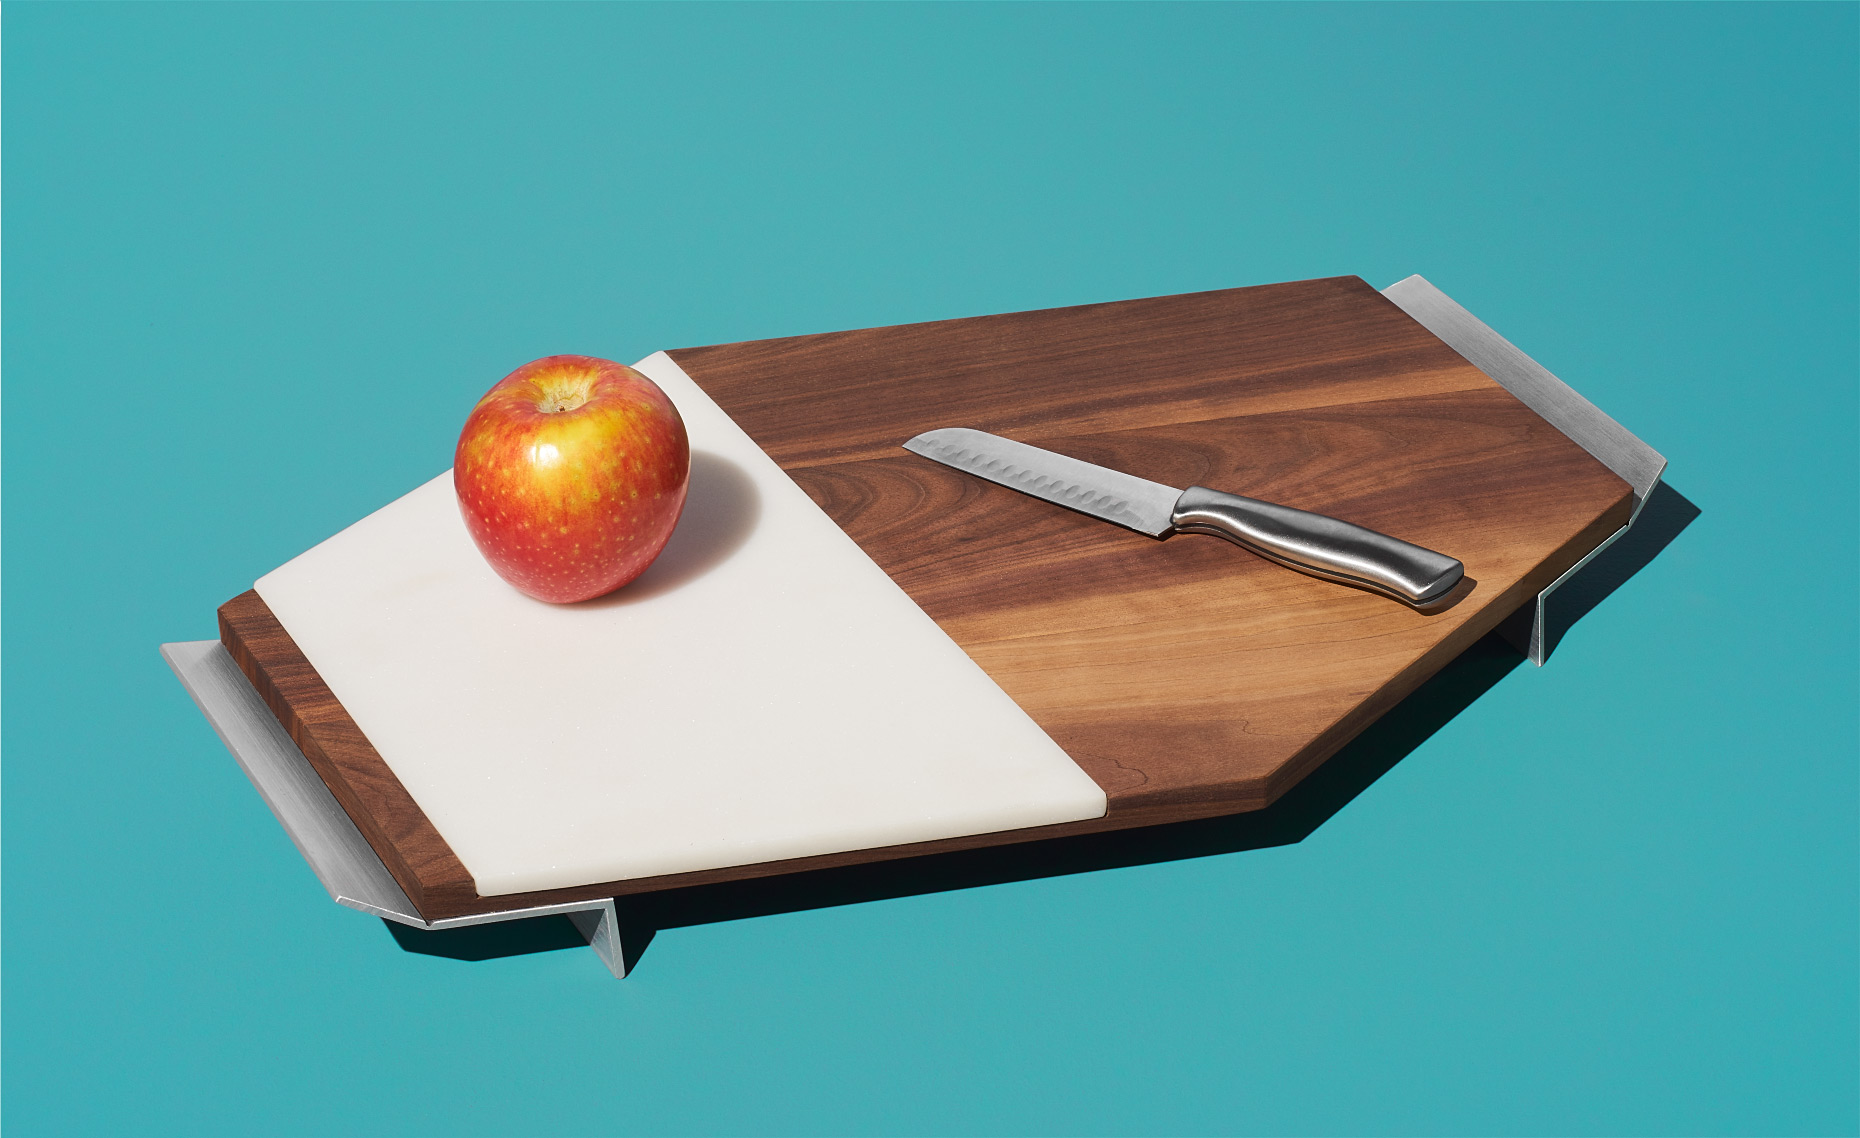 Tandem Made walnut and marble cutting board with apple and knife on aqua surface